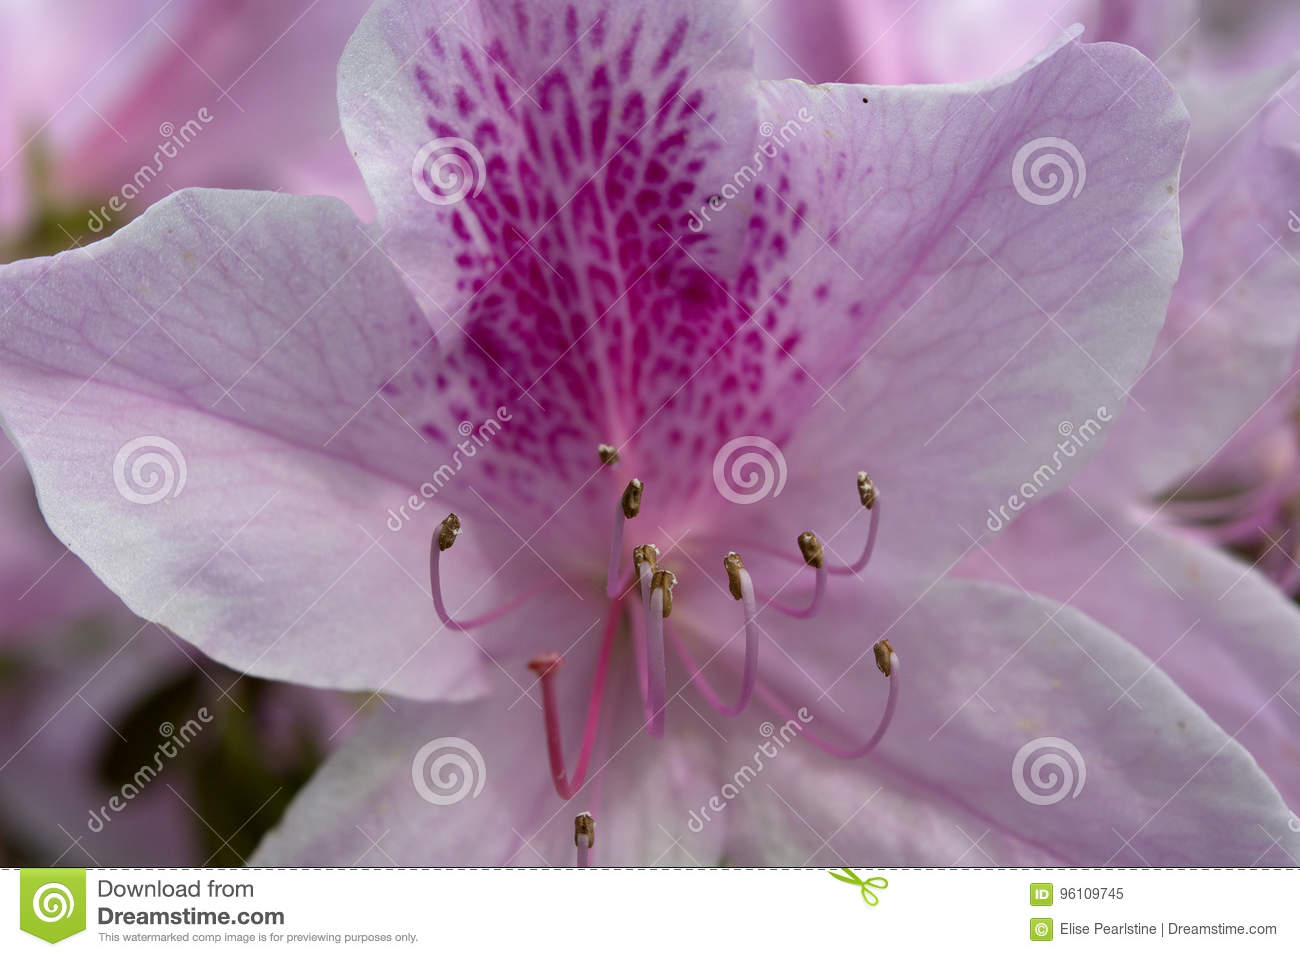 Pink Azalea Closeup with Magenta Freckles and Stamens